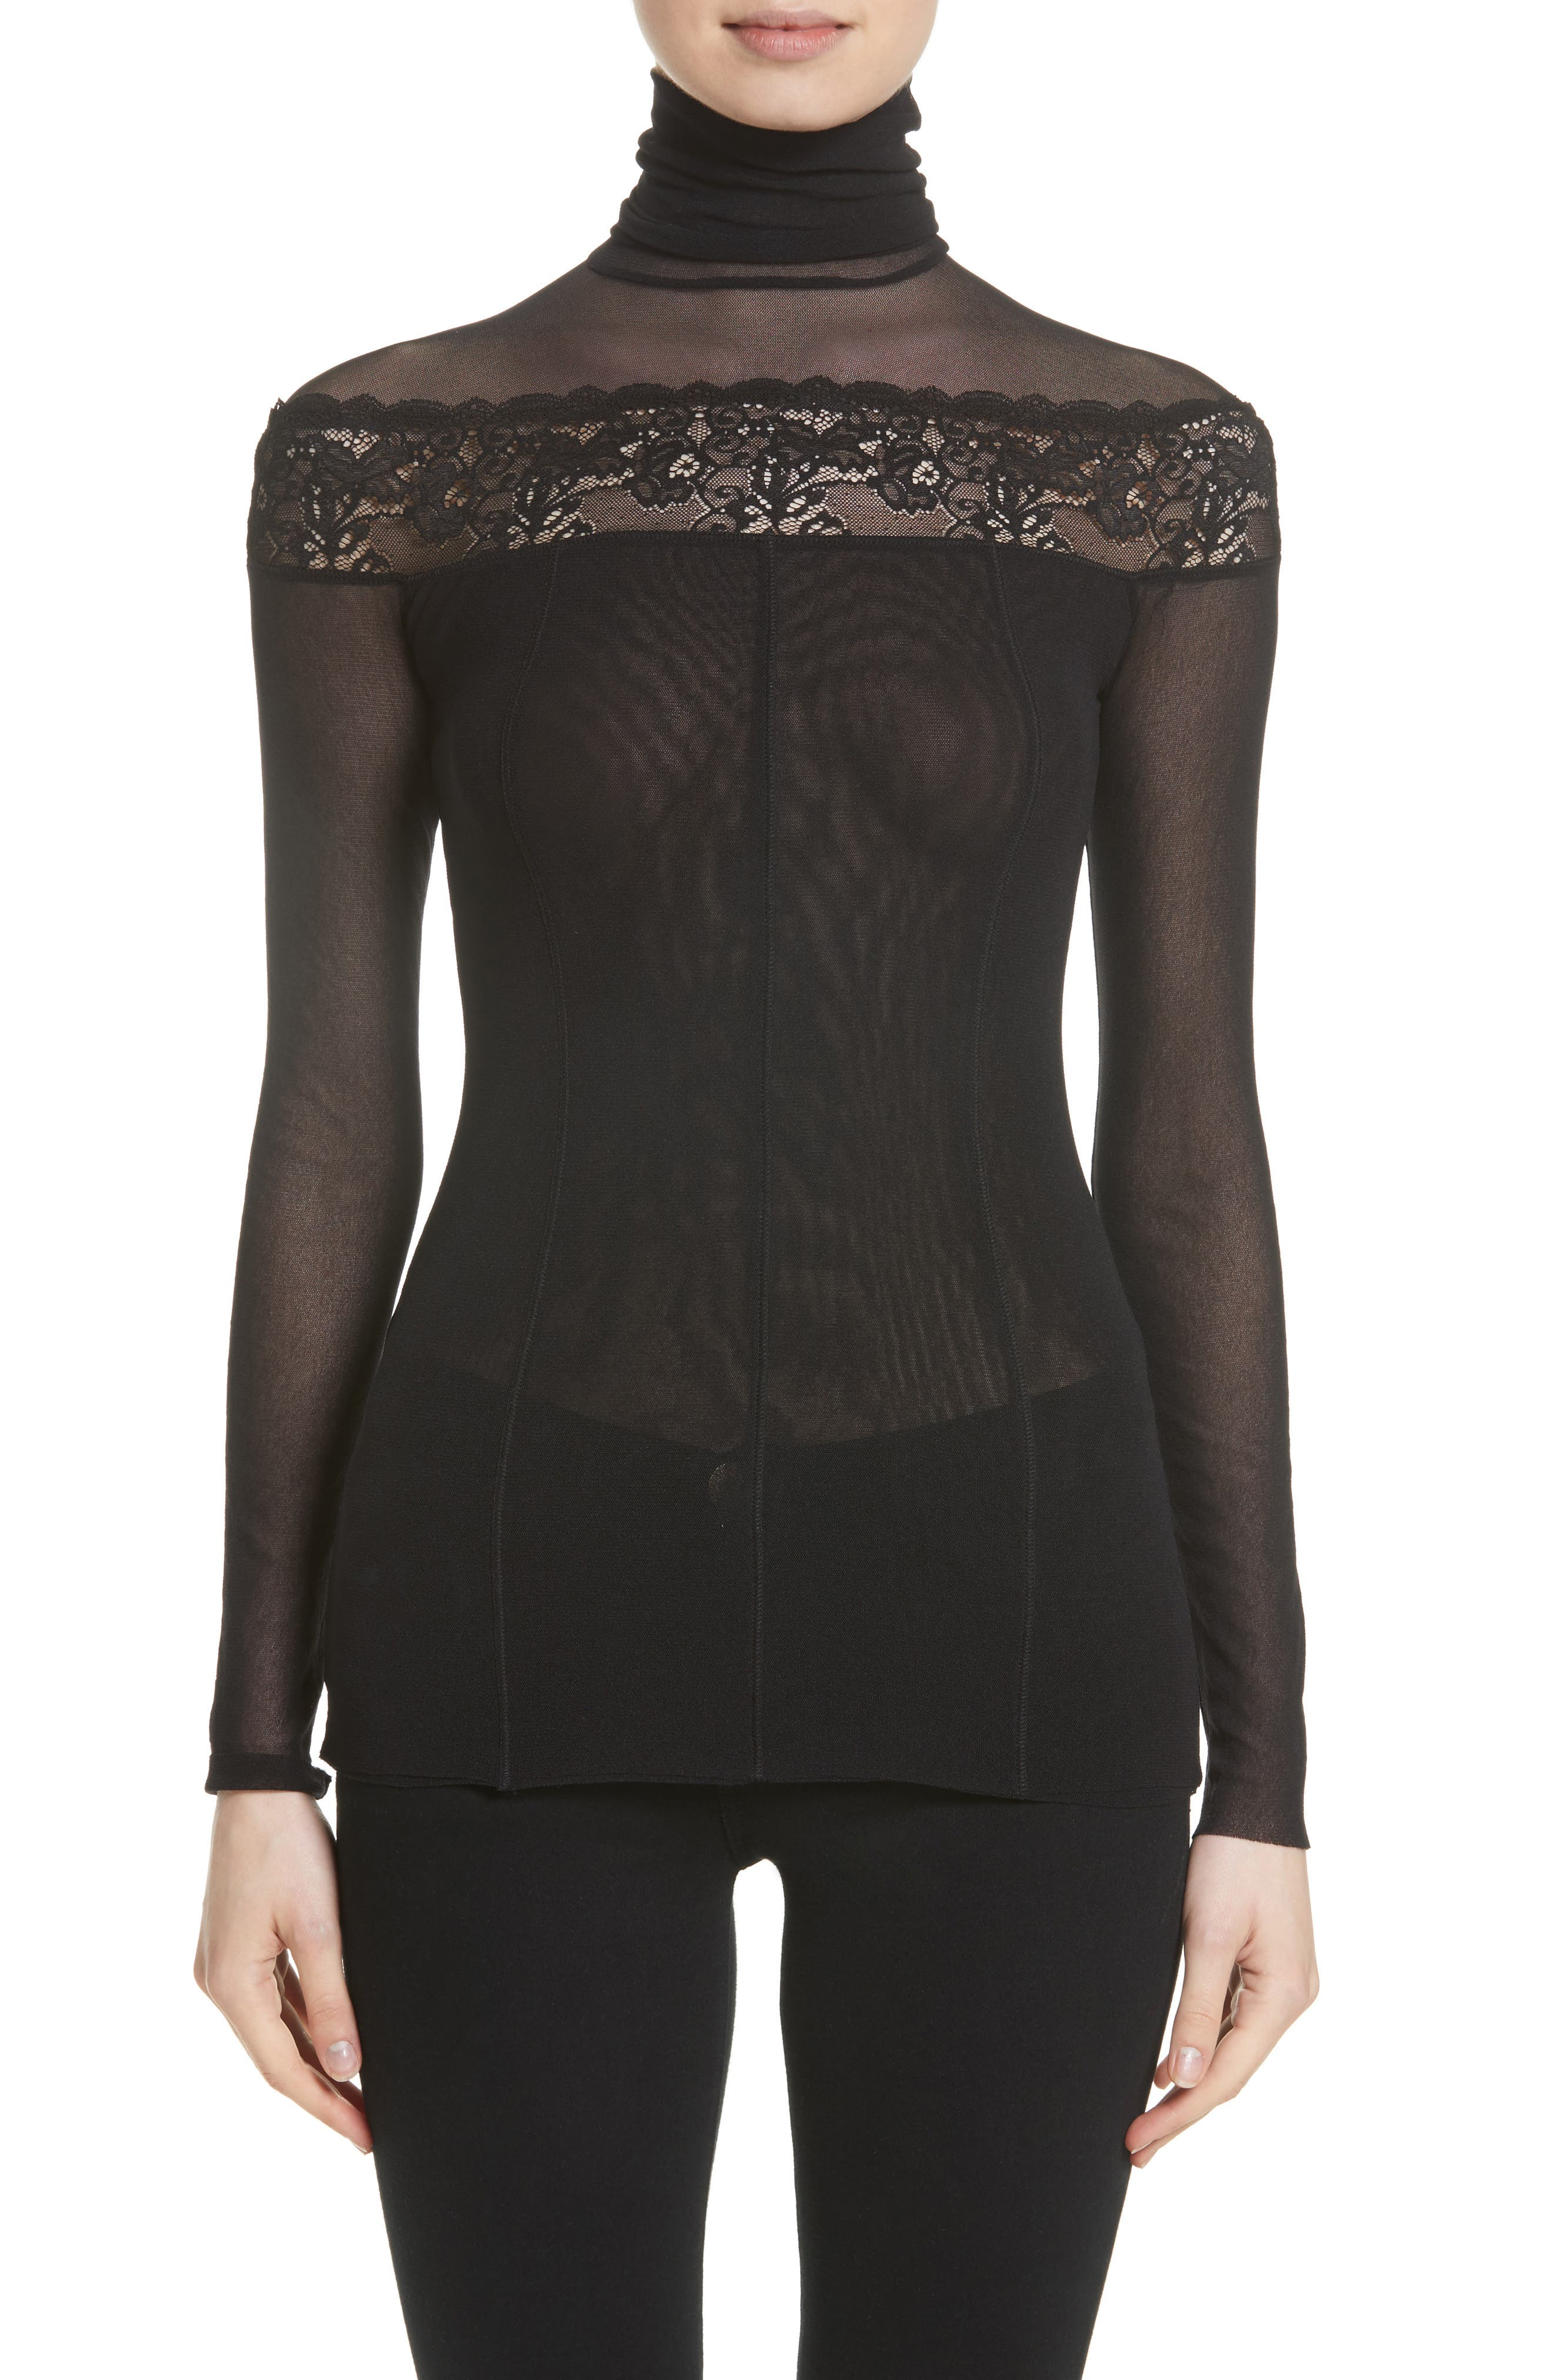 Alternate Image 1 Selected - Fuzzi Sheer Lace Trim Tulle Turtleneck (Nordstrom Exclusive)